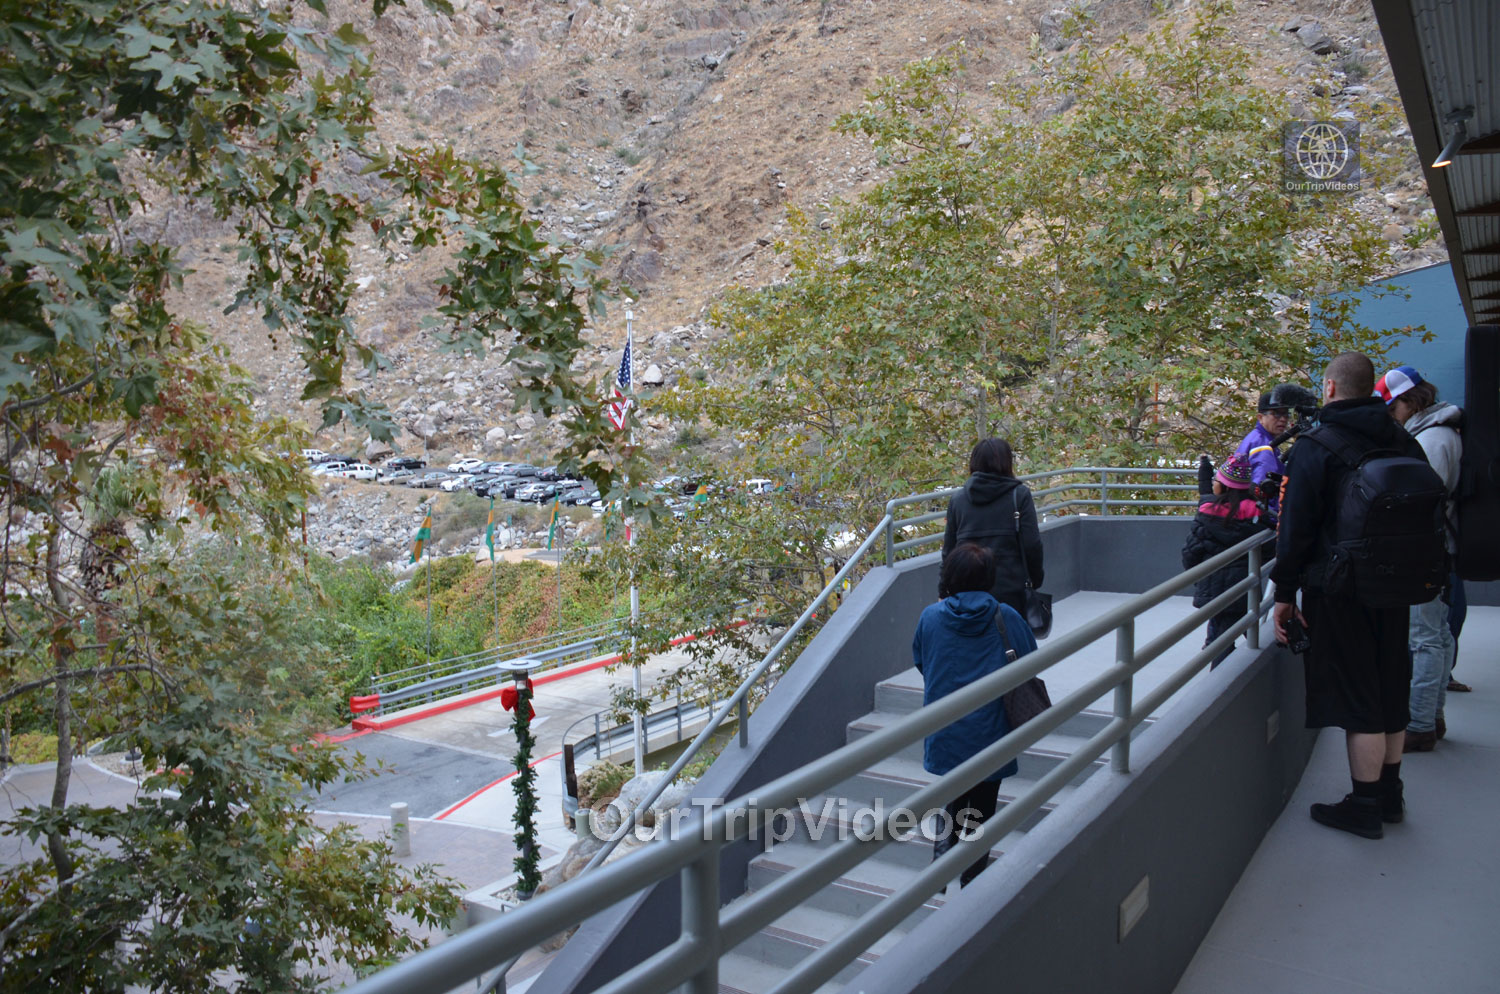 Aerial Tramway, Palm Springs, CA, USA - Picture 10 of 25